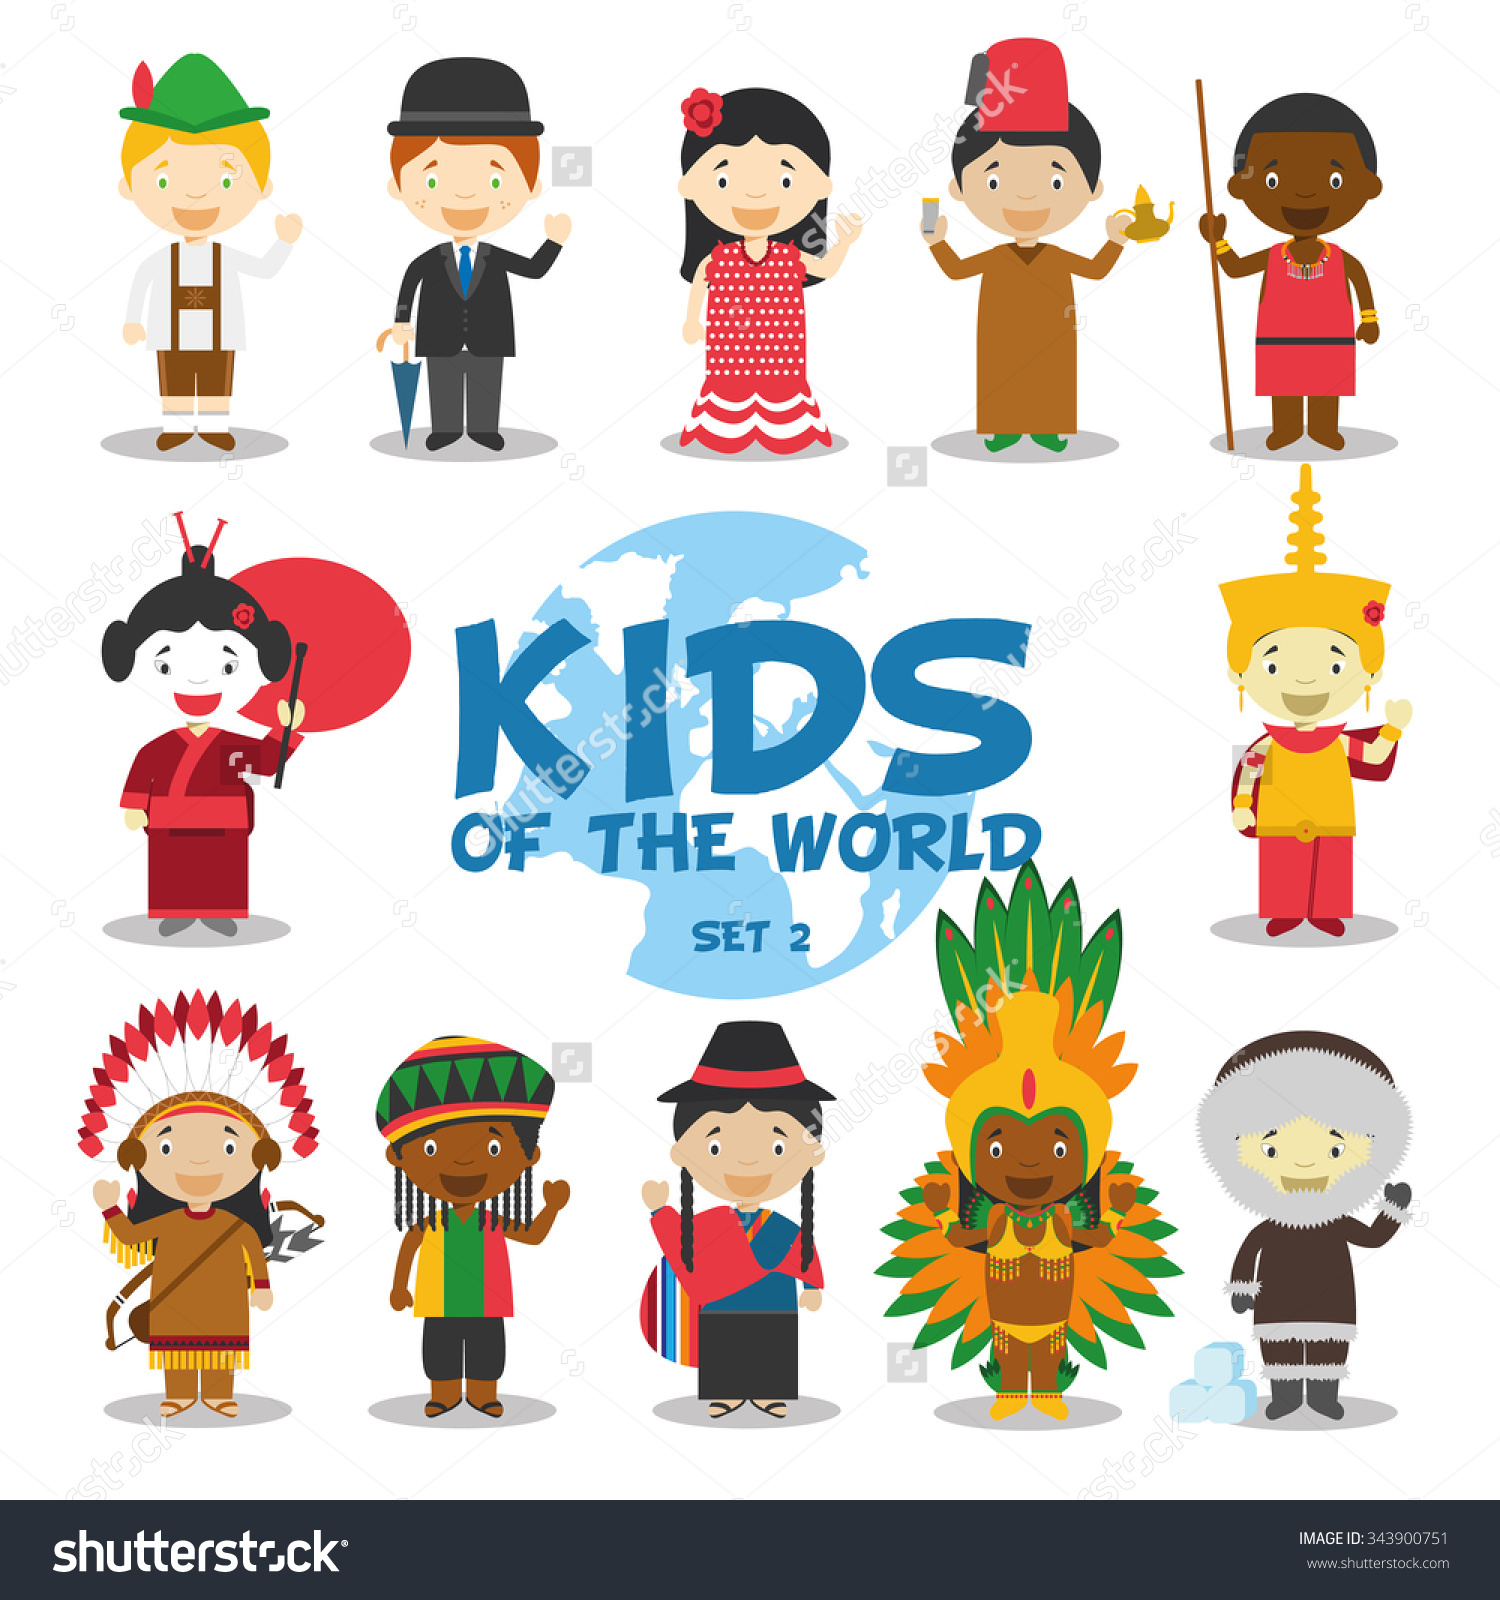 Kids of the world vector illustration: Nationalities Set 2. 12.